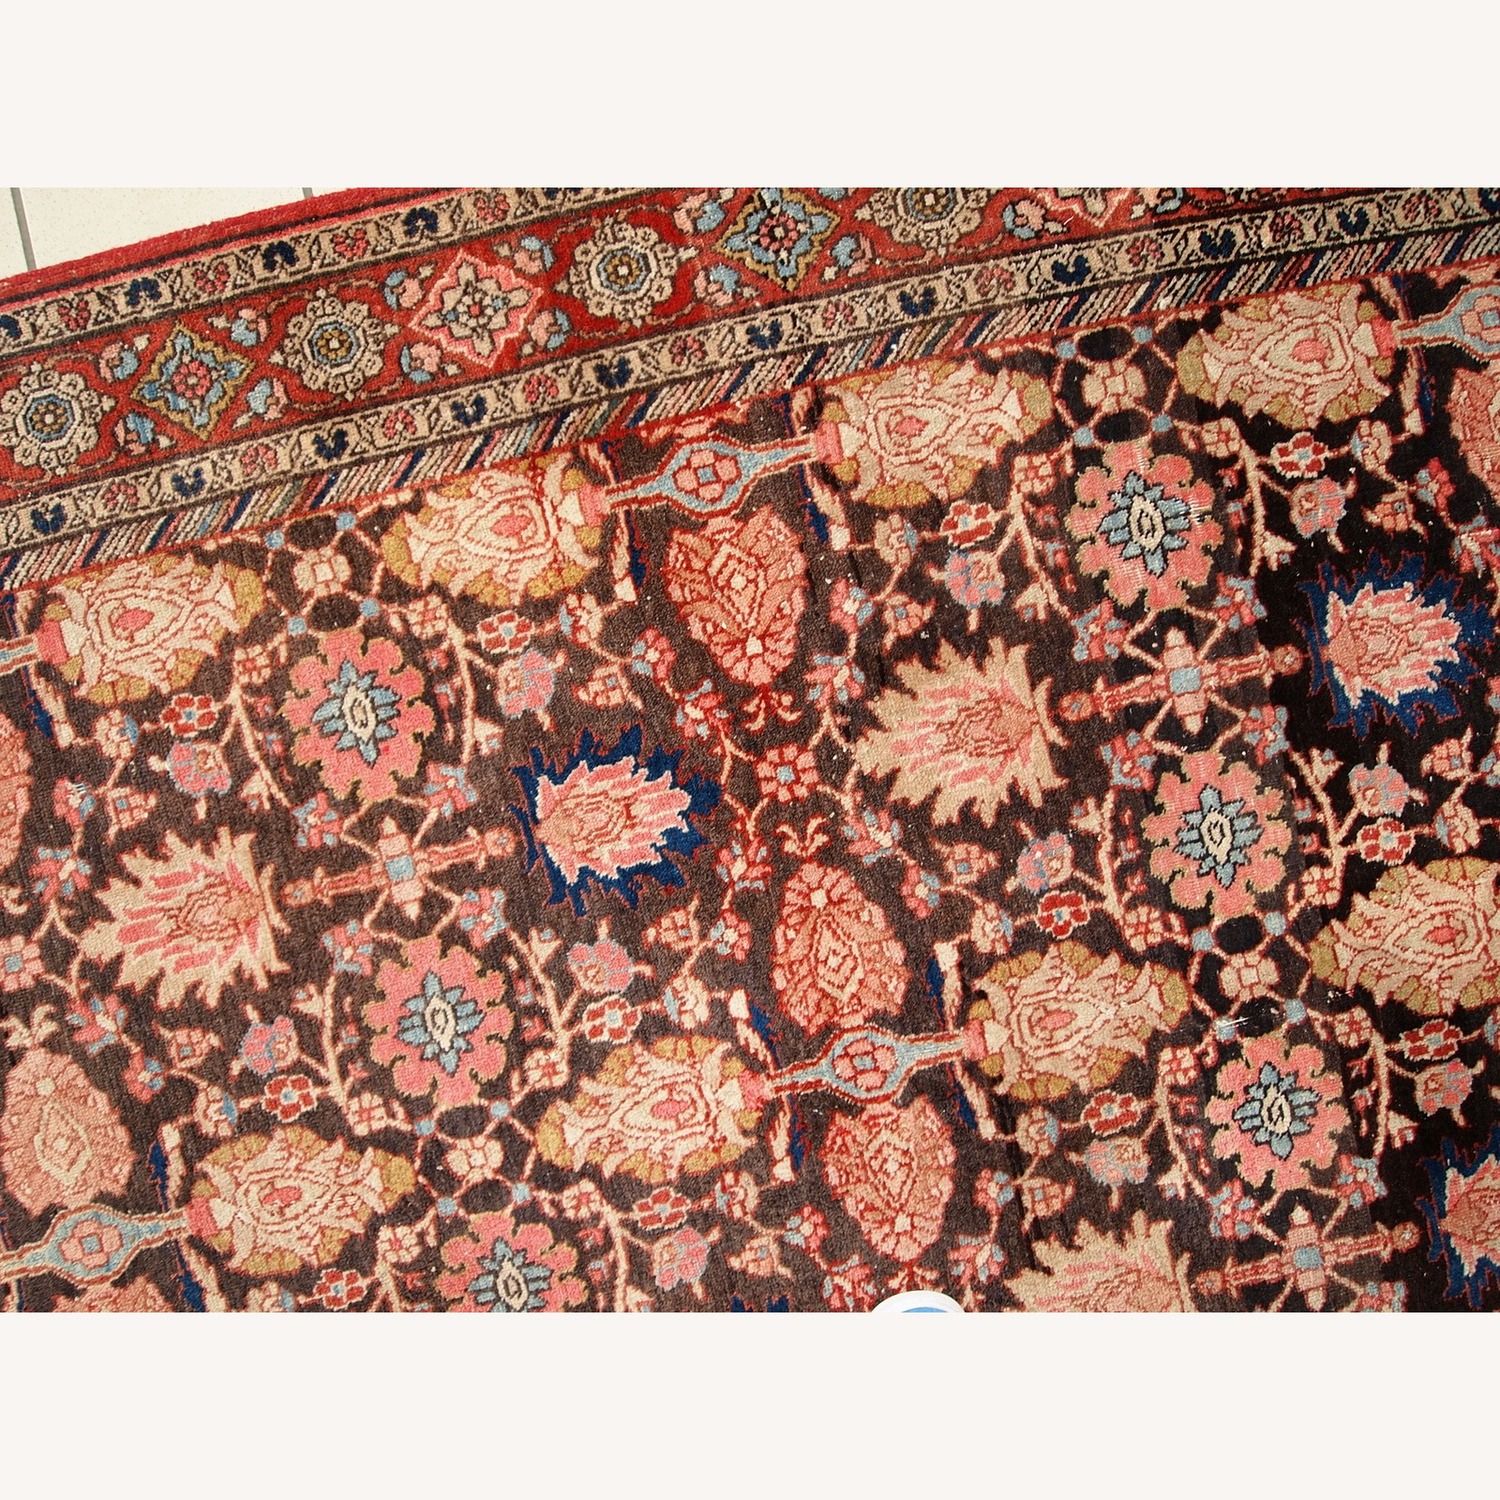 Handmade Antique Persian Bidjar Rug - image-6